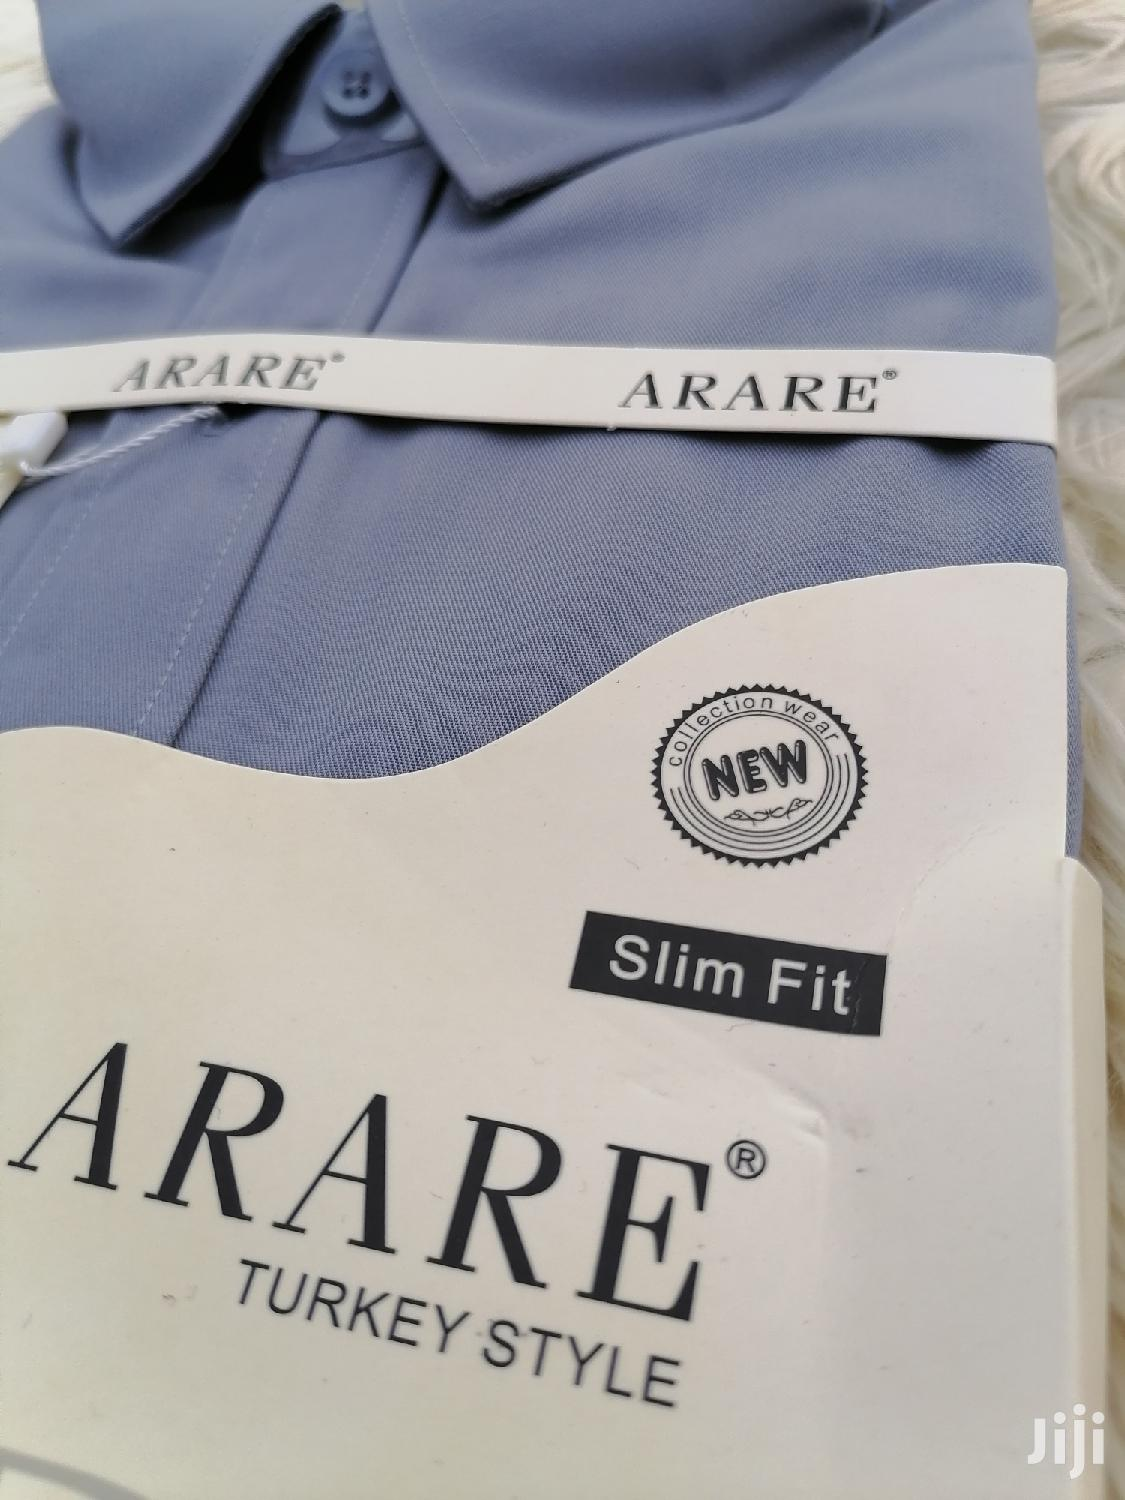 Arare Executive Long Sleeves Shirt For Men's | Clothing for sale in East Legon, Greater Accra, Ghana